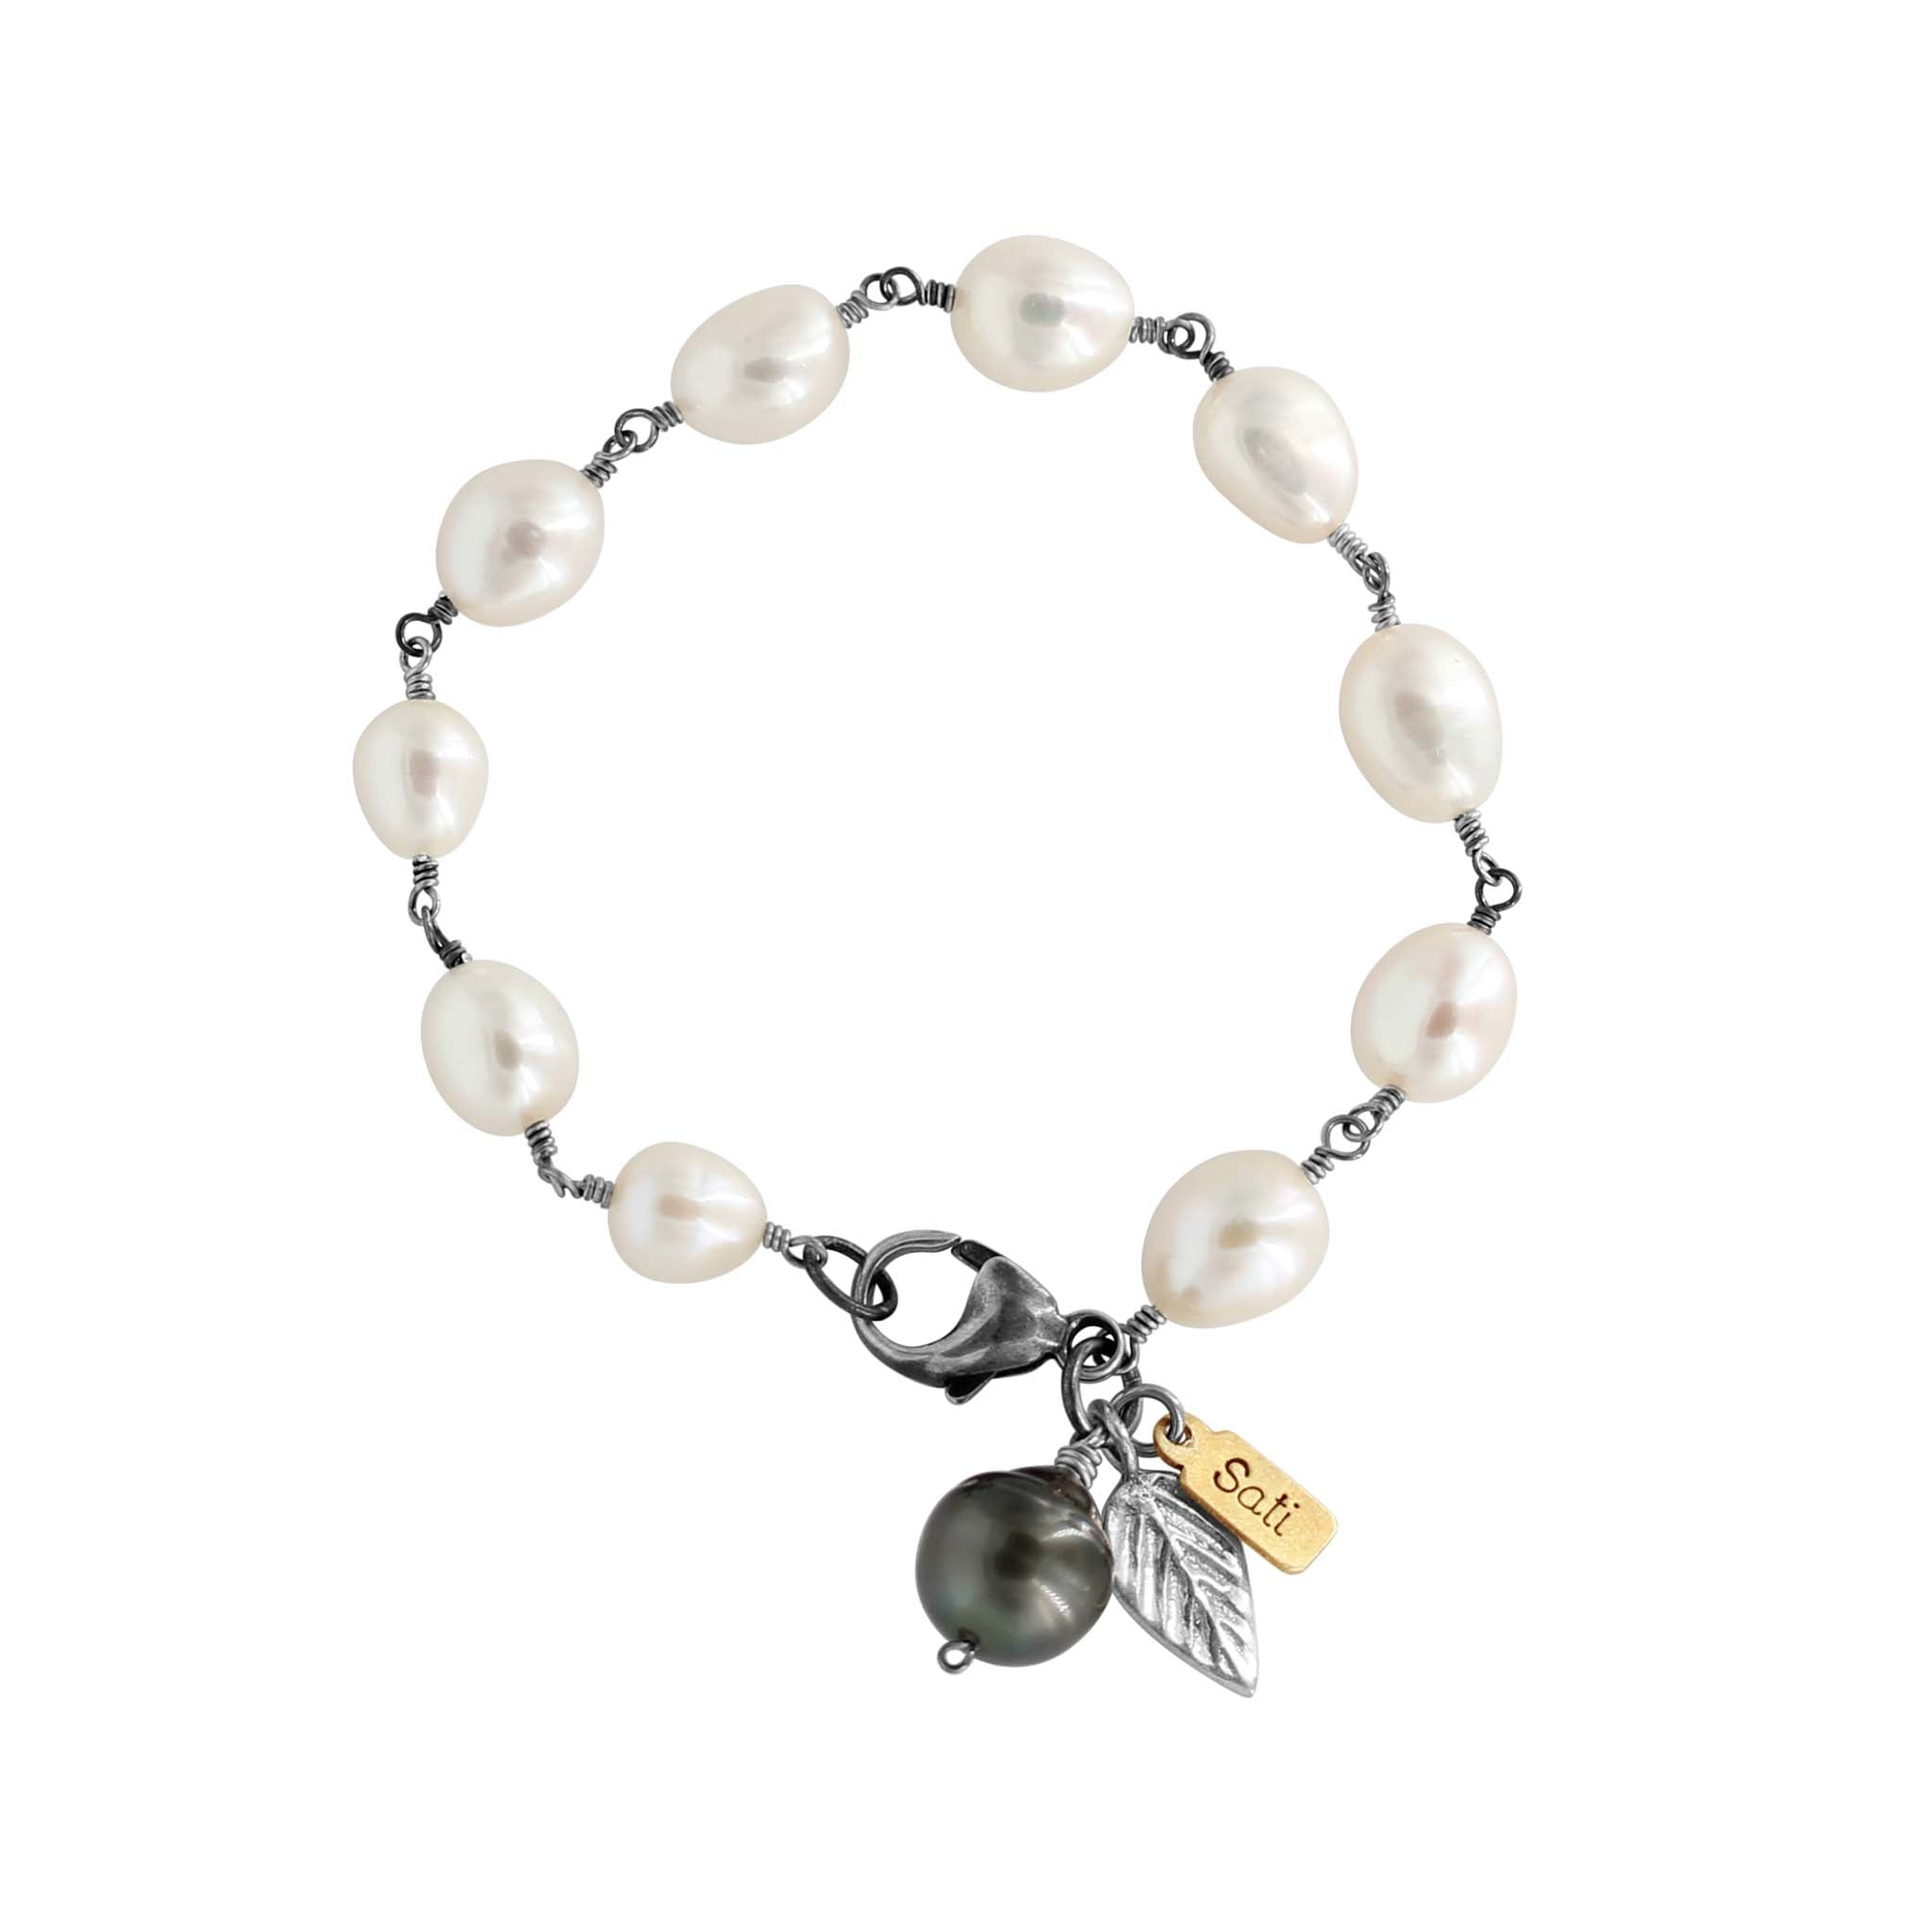 Graceful Pearl Silver Bracelet - Sati Gems Hawaii Healing Crystal Gemstone Jewelry